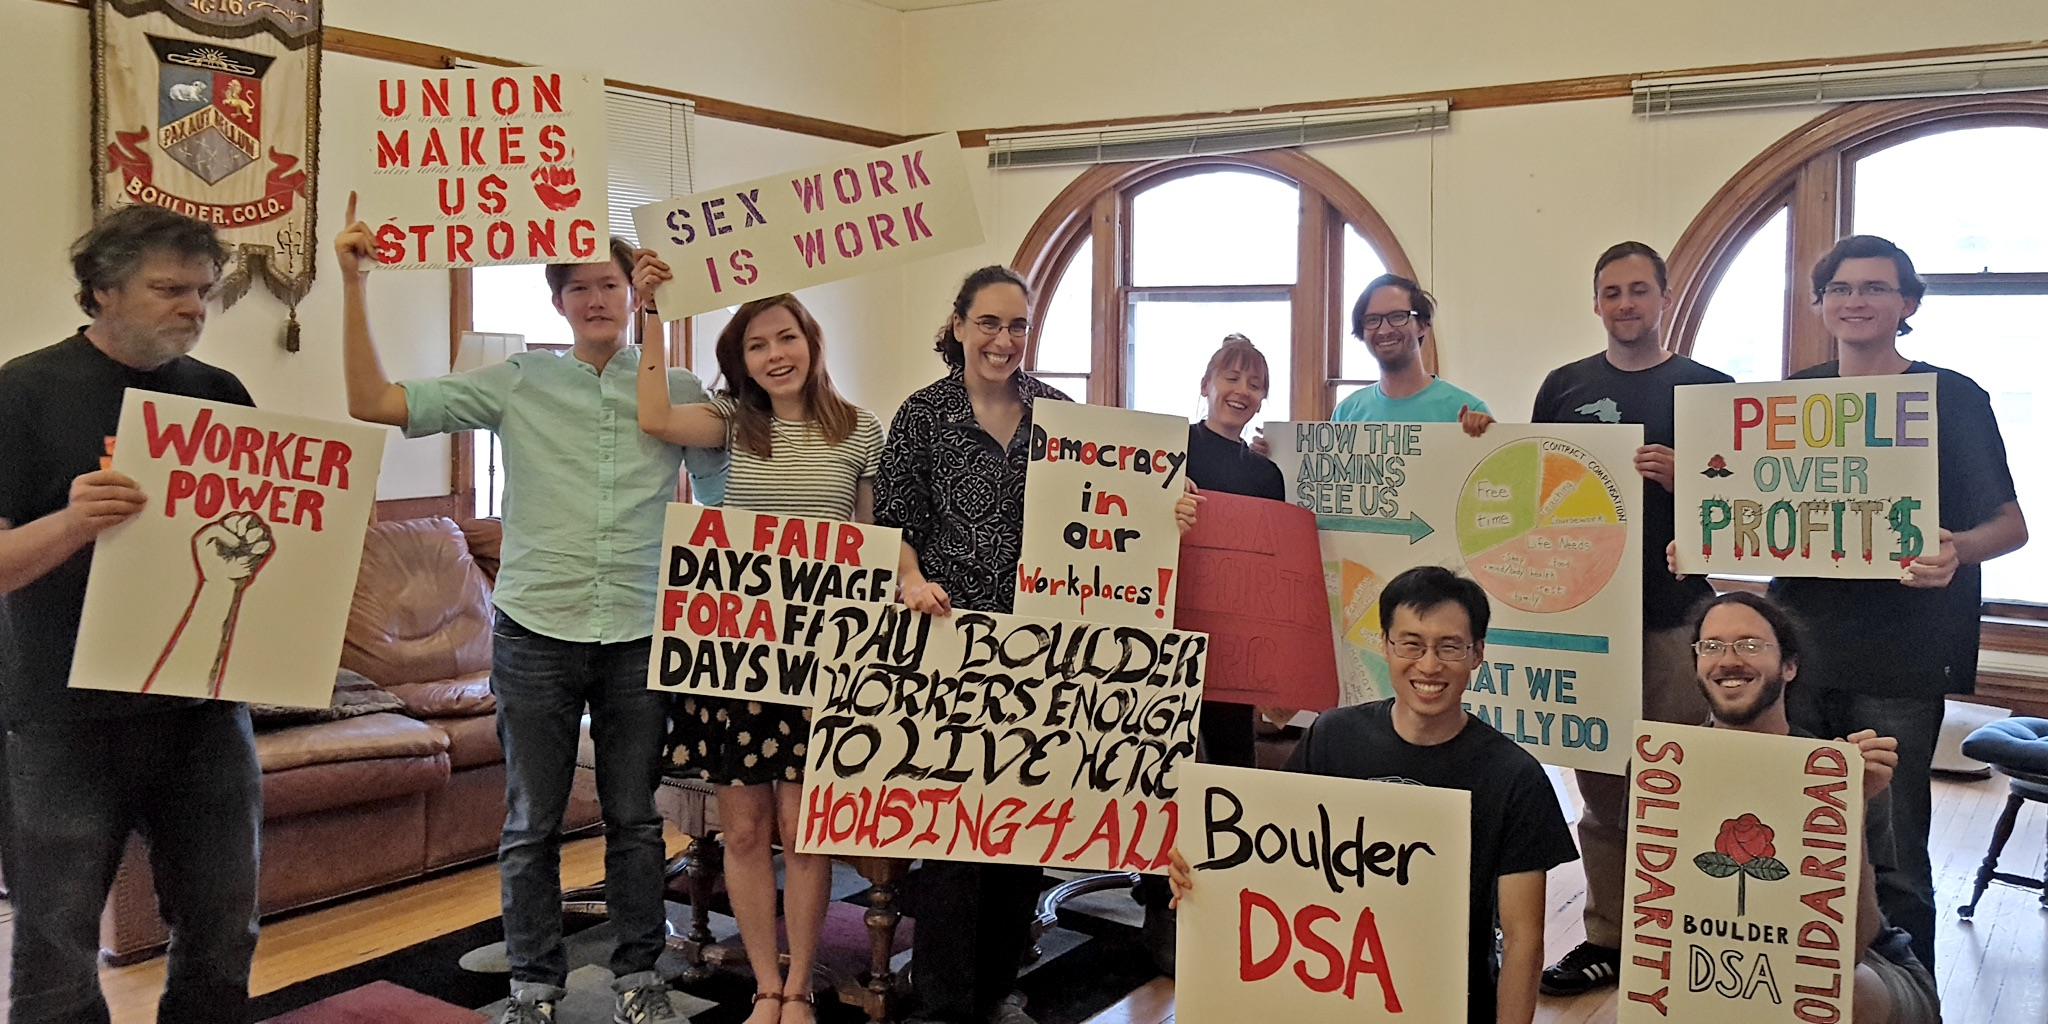 Pictures of the Boulder DSA